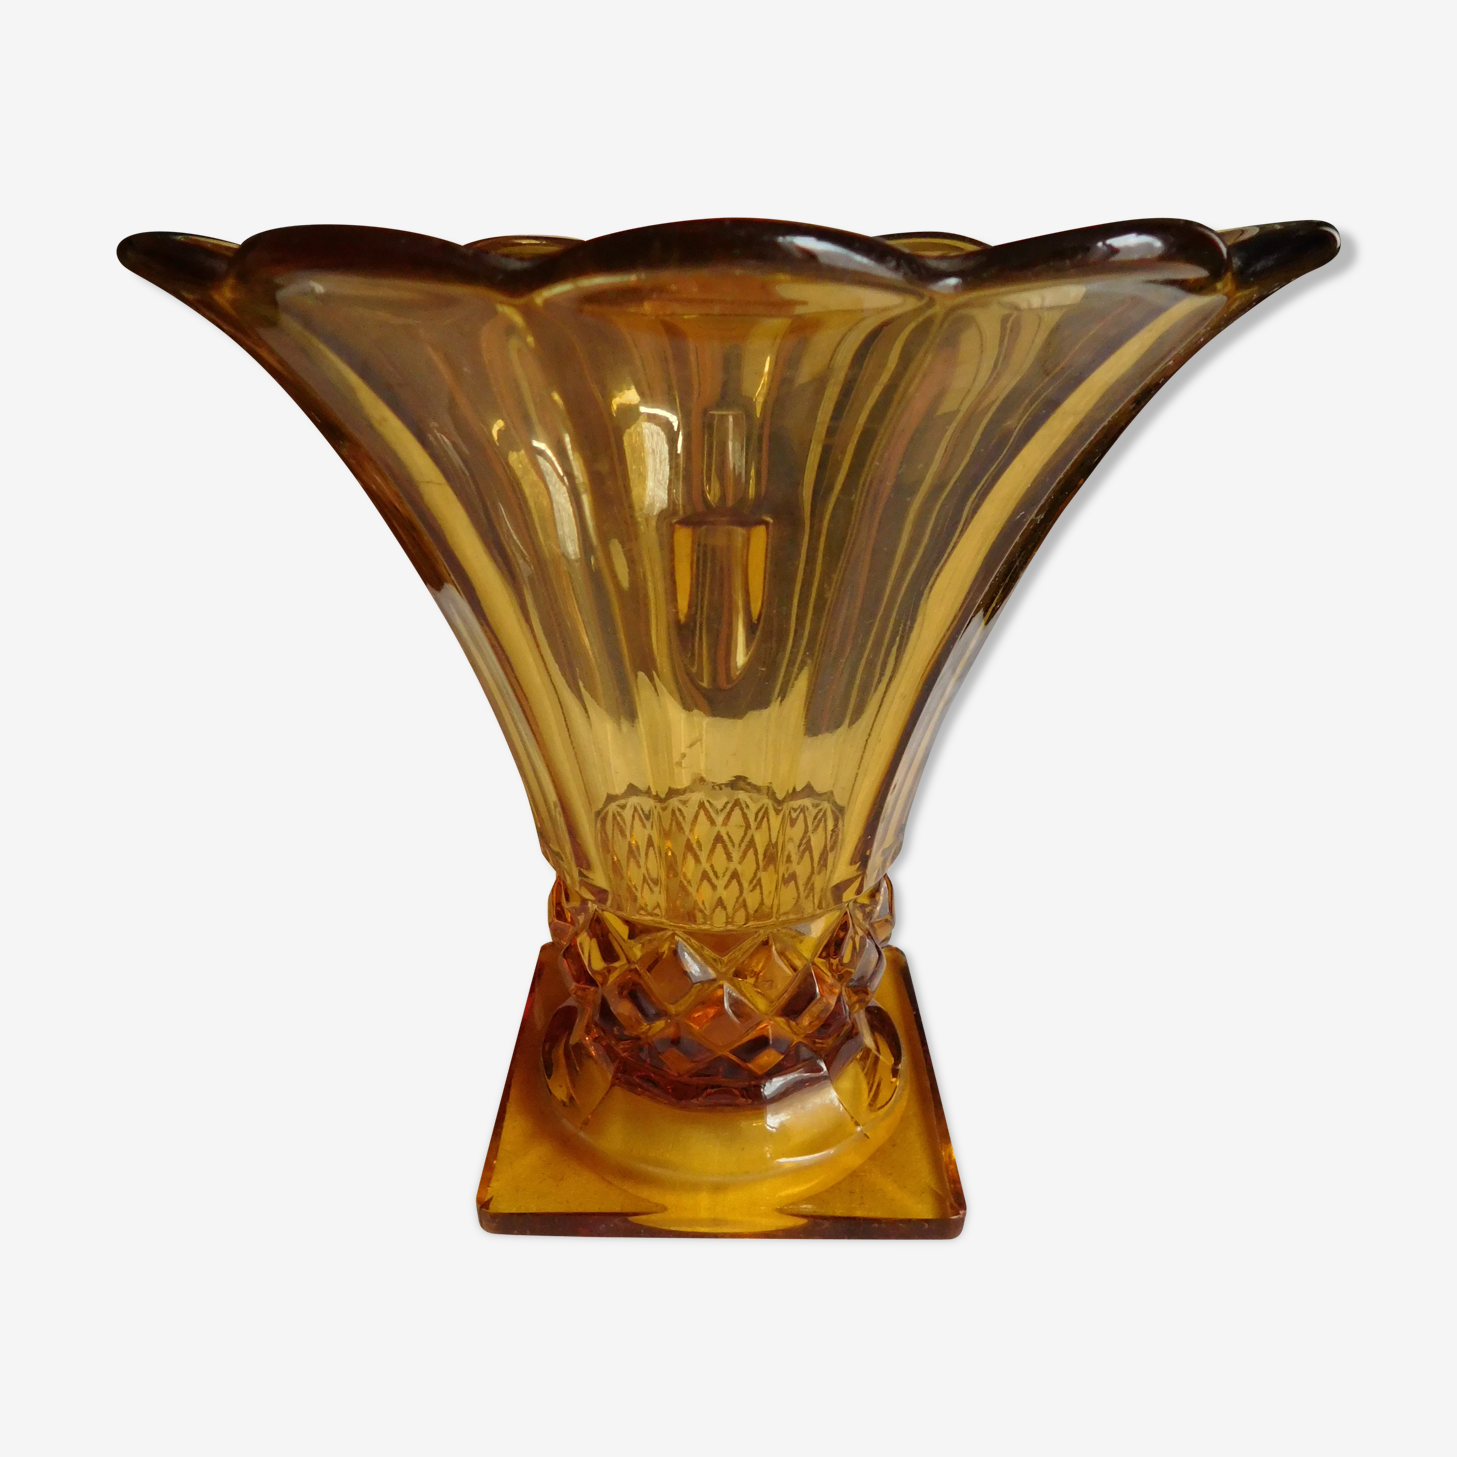 Old 50 years amber tulip vase